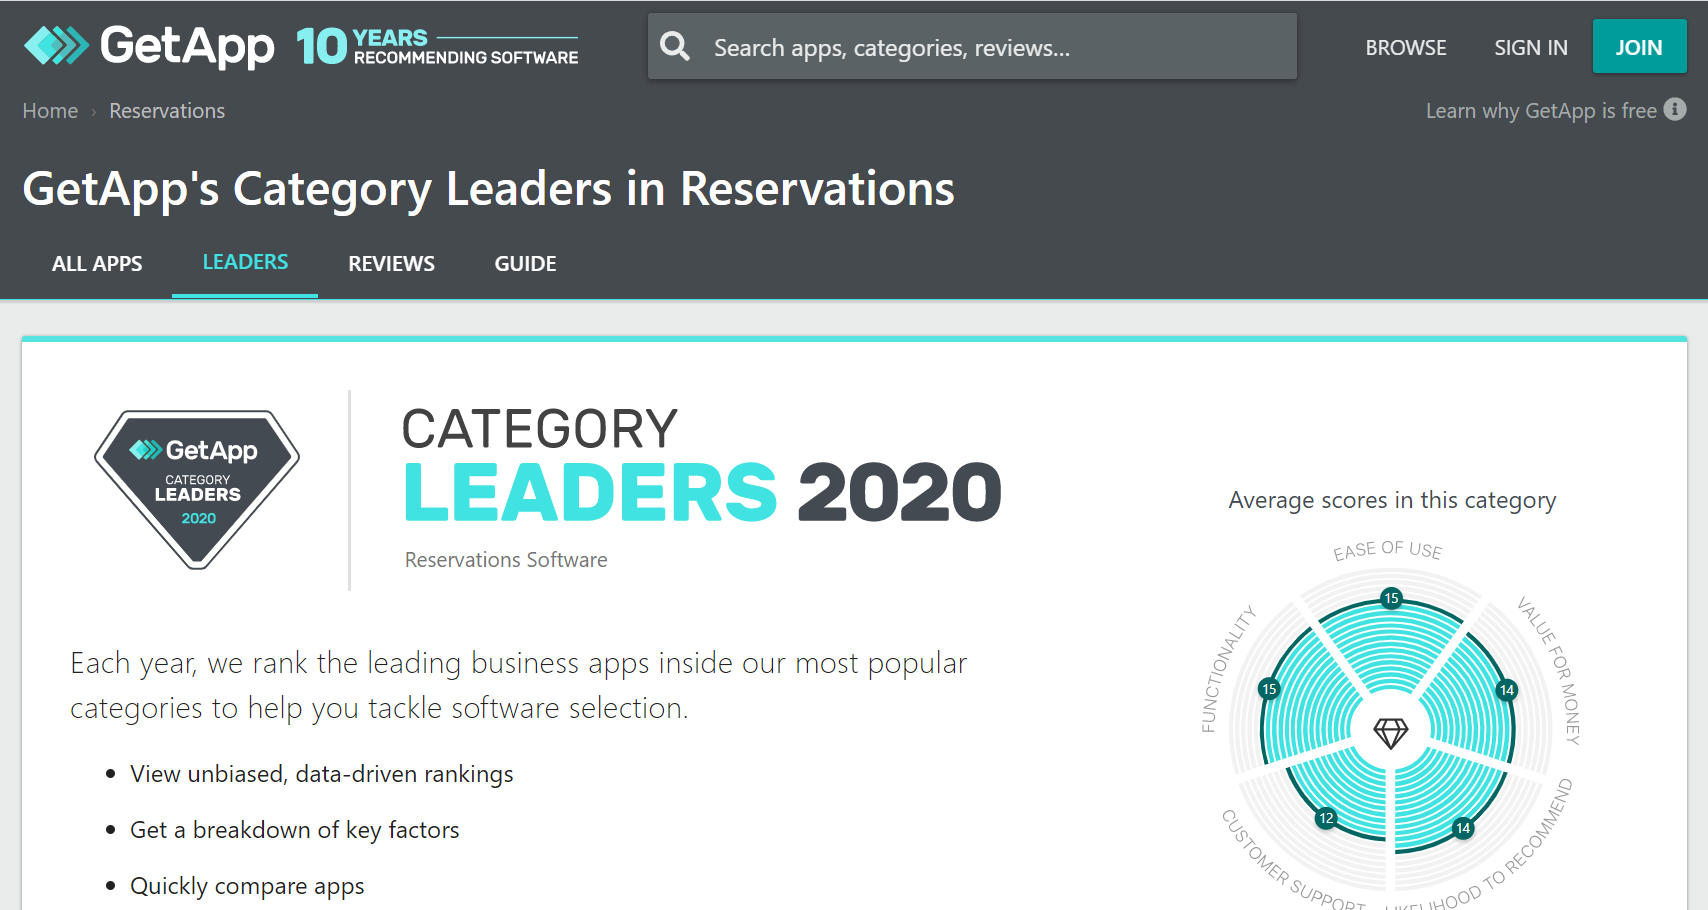 GetApp's Category Leaders for reservations software